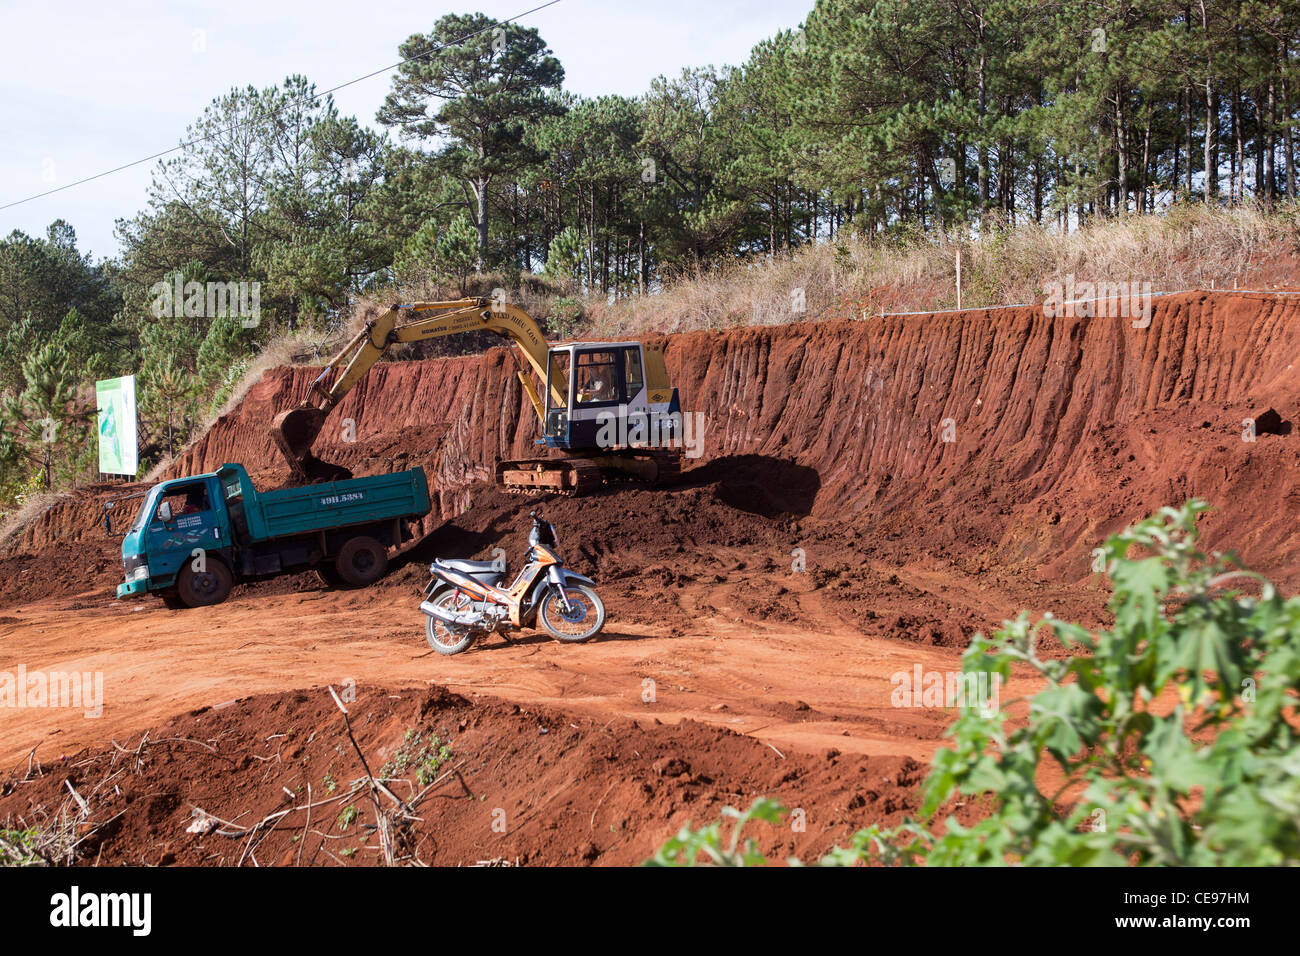 Contractors excavating Landscape on building site near Dalat - Stock Image